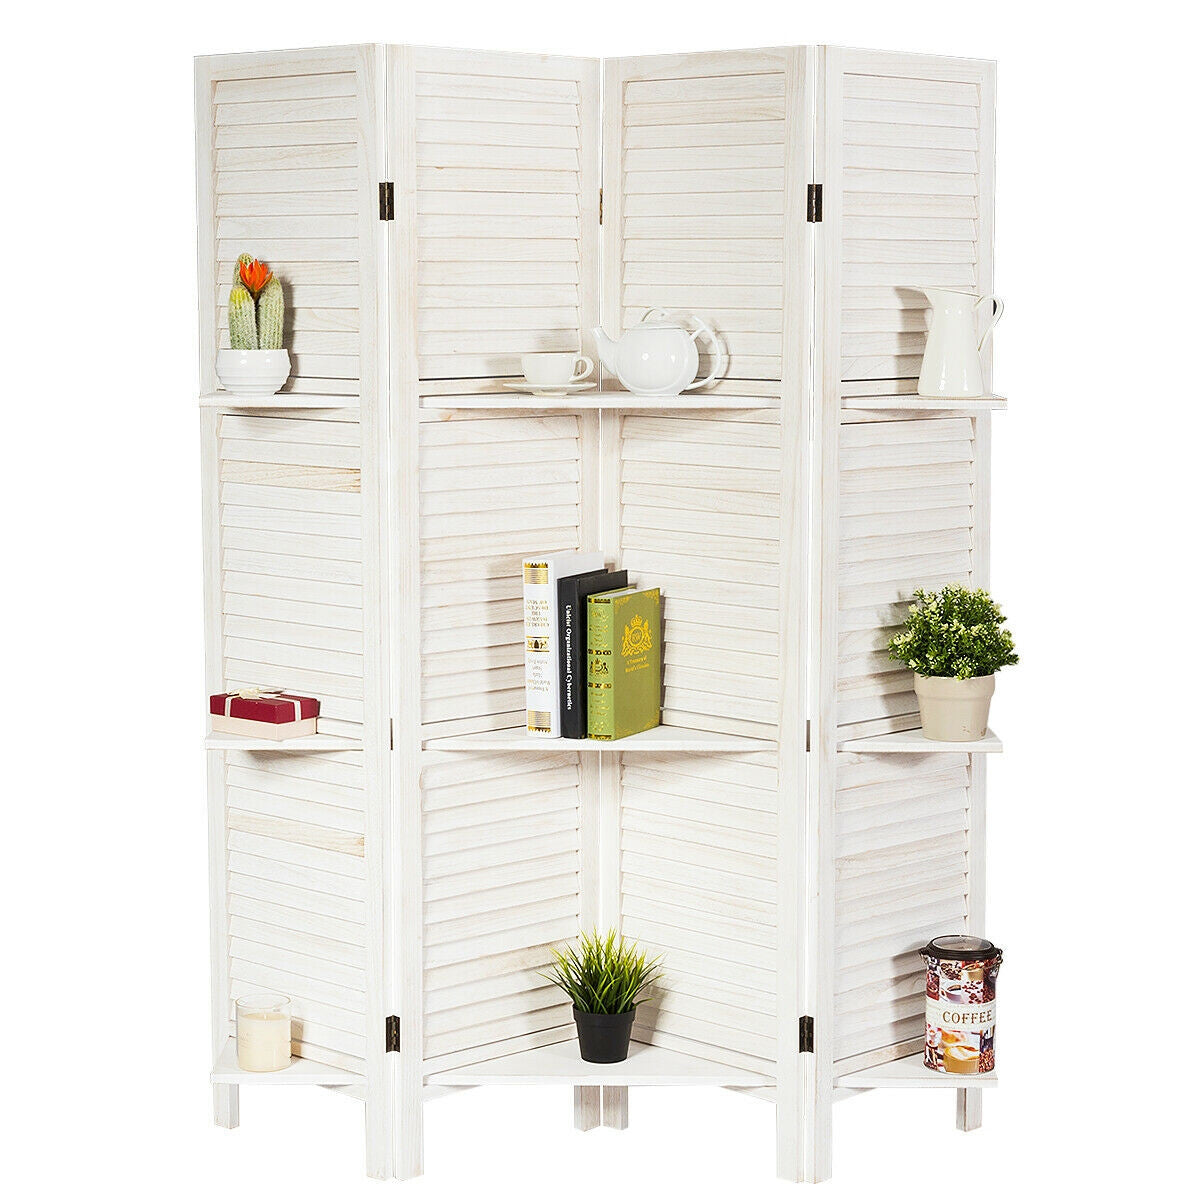 Room Divider 4 Panel Freestanding Folding Hinged Partition with Shelves